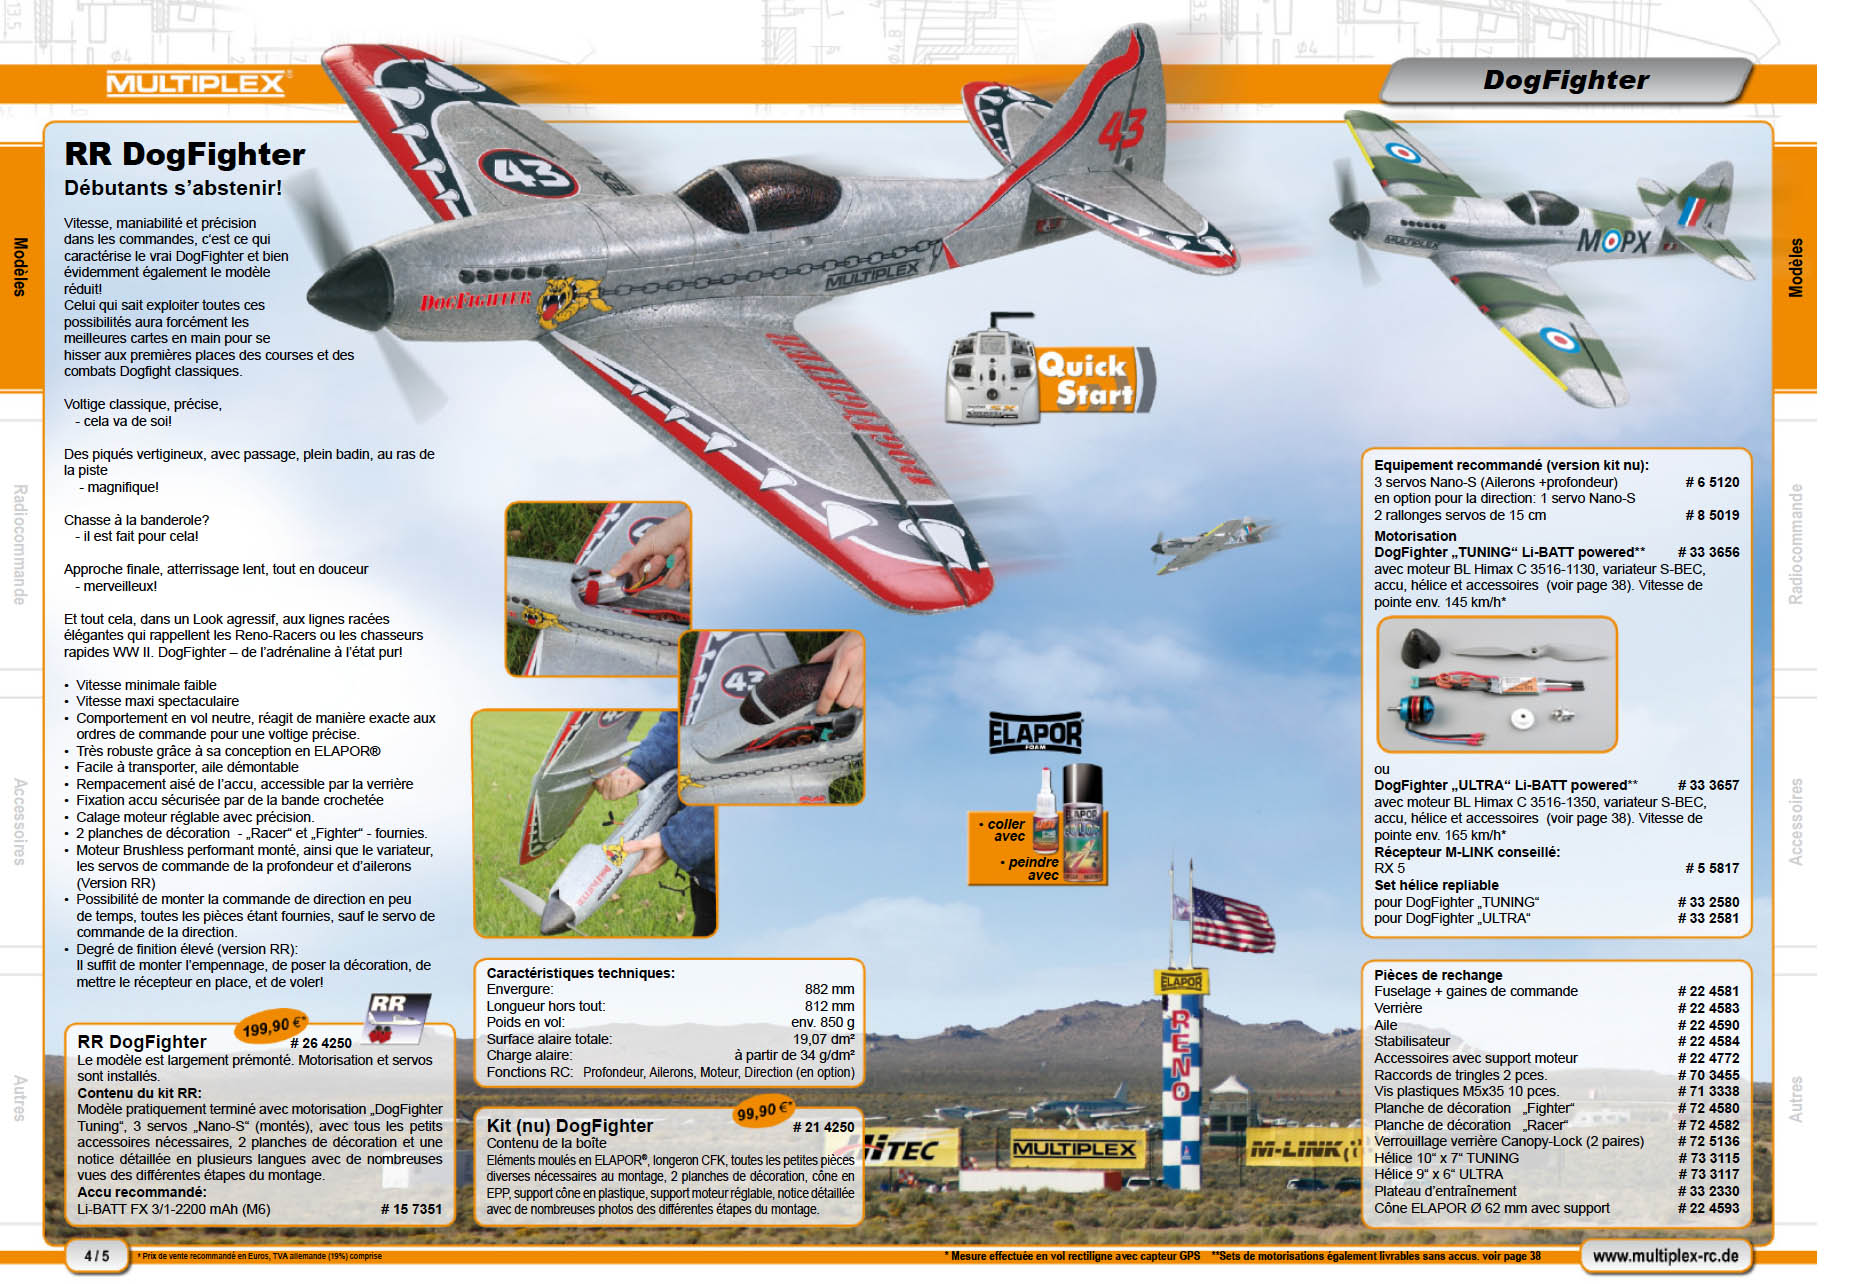 Le Dogfighter dans la catalogue 2011 de Multiplex